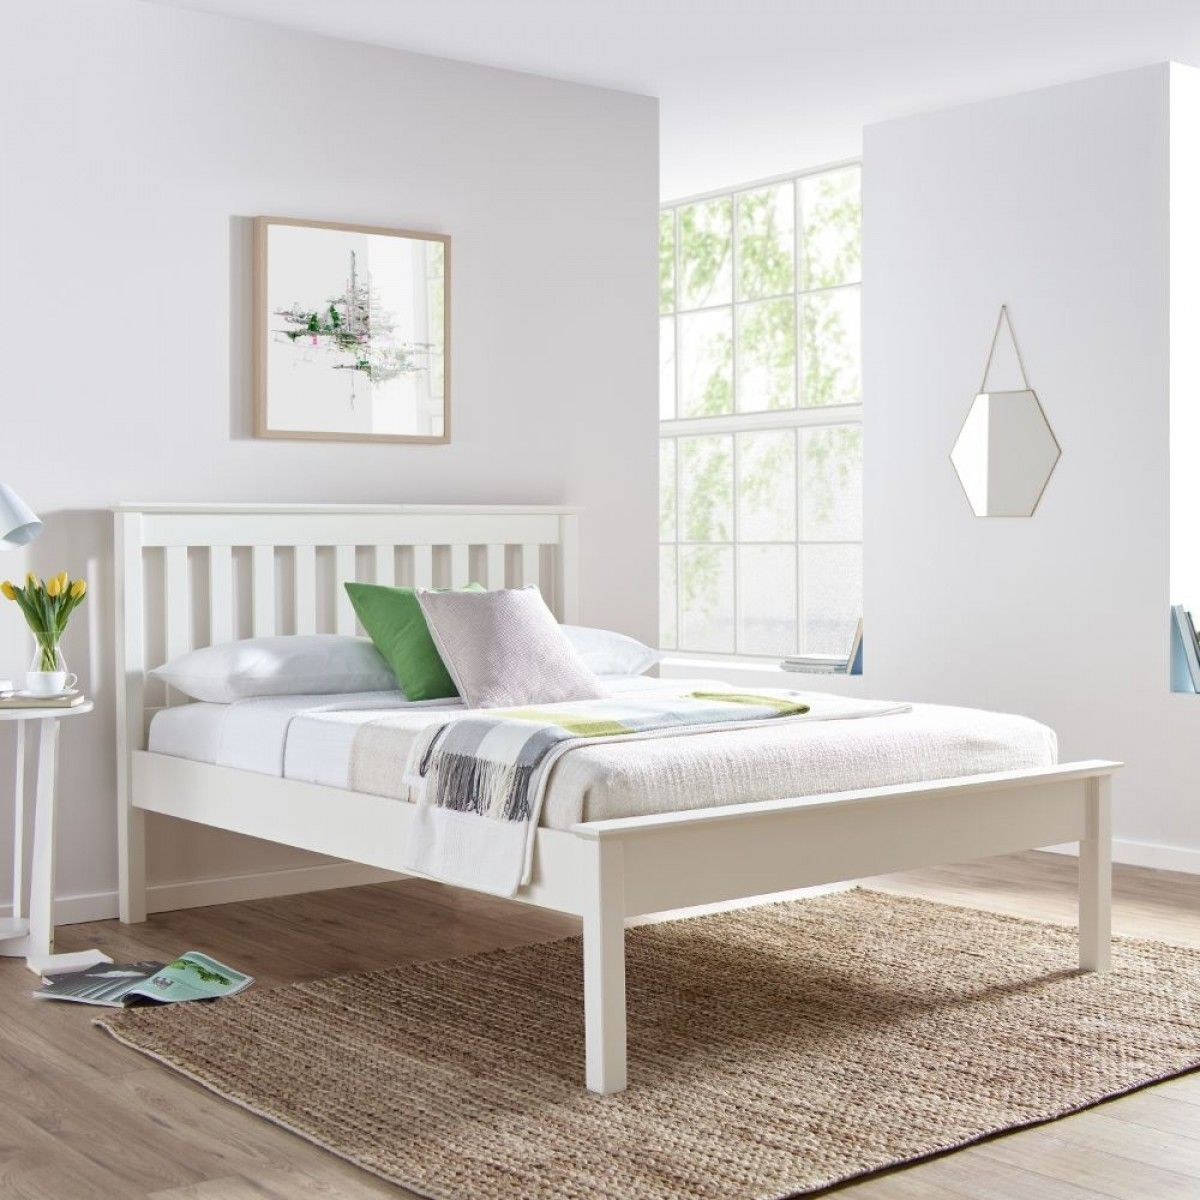 Grace White Wooden Low Foot End Bed White bed frame